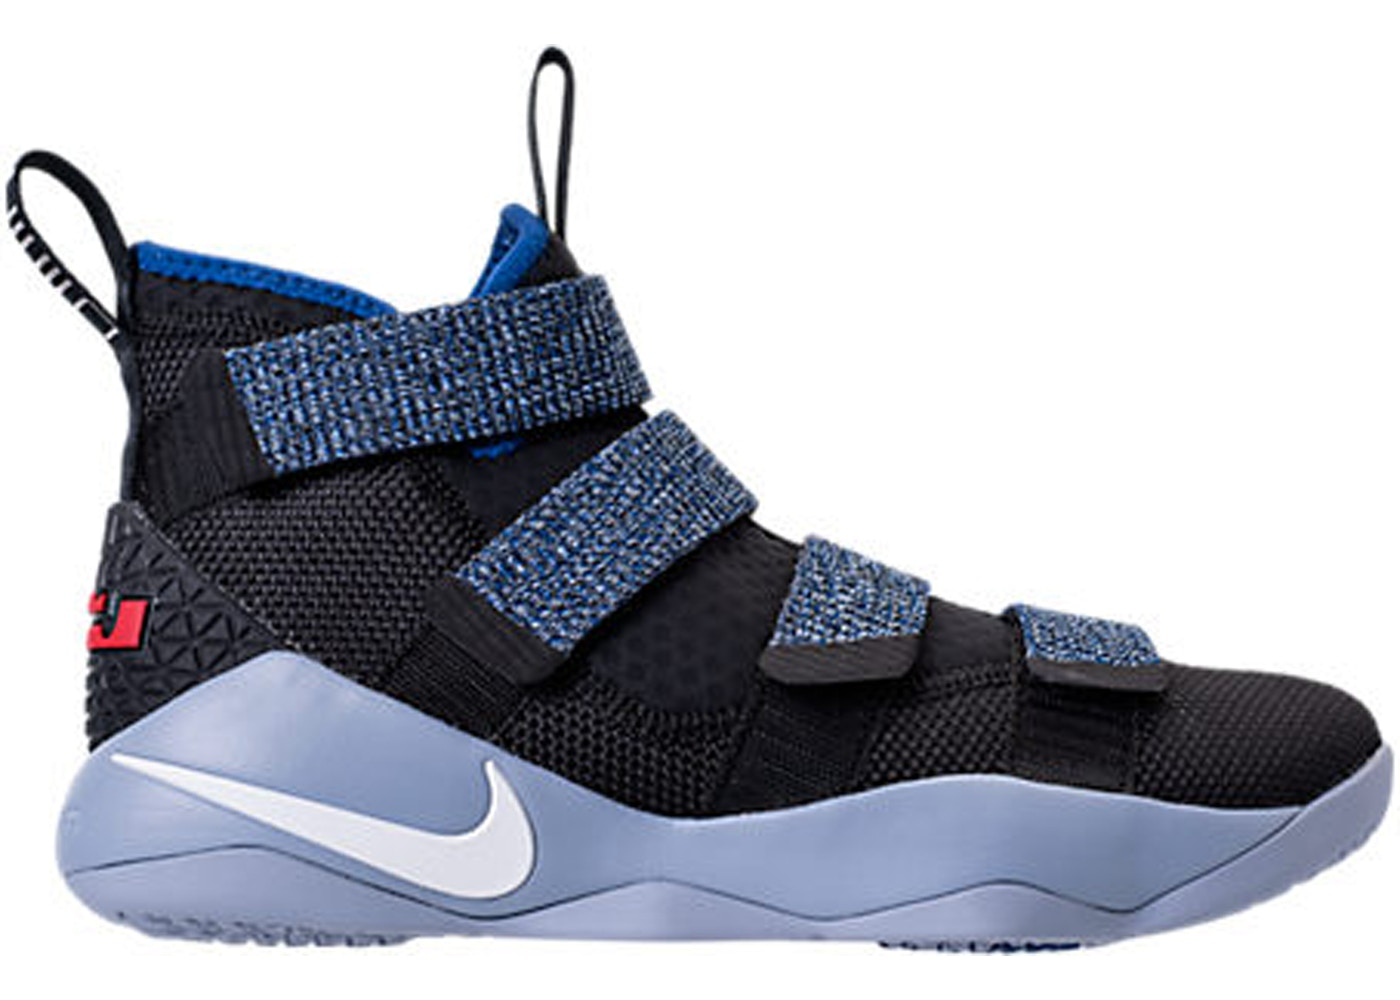 95903390e984 Nike LeBron Zoom Soldier Shoes - Release Date